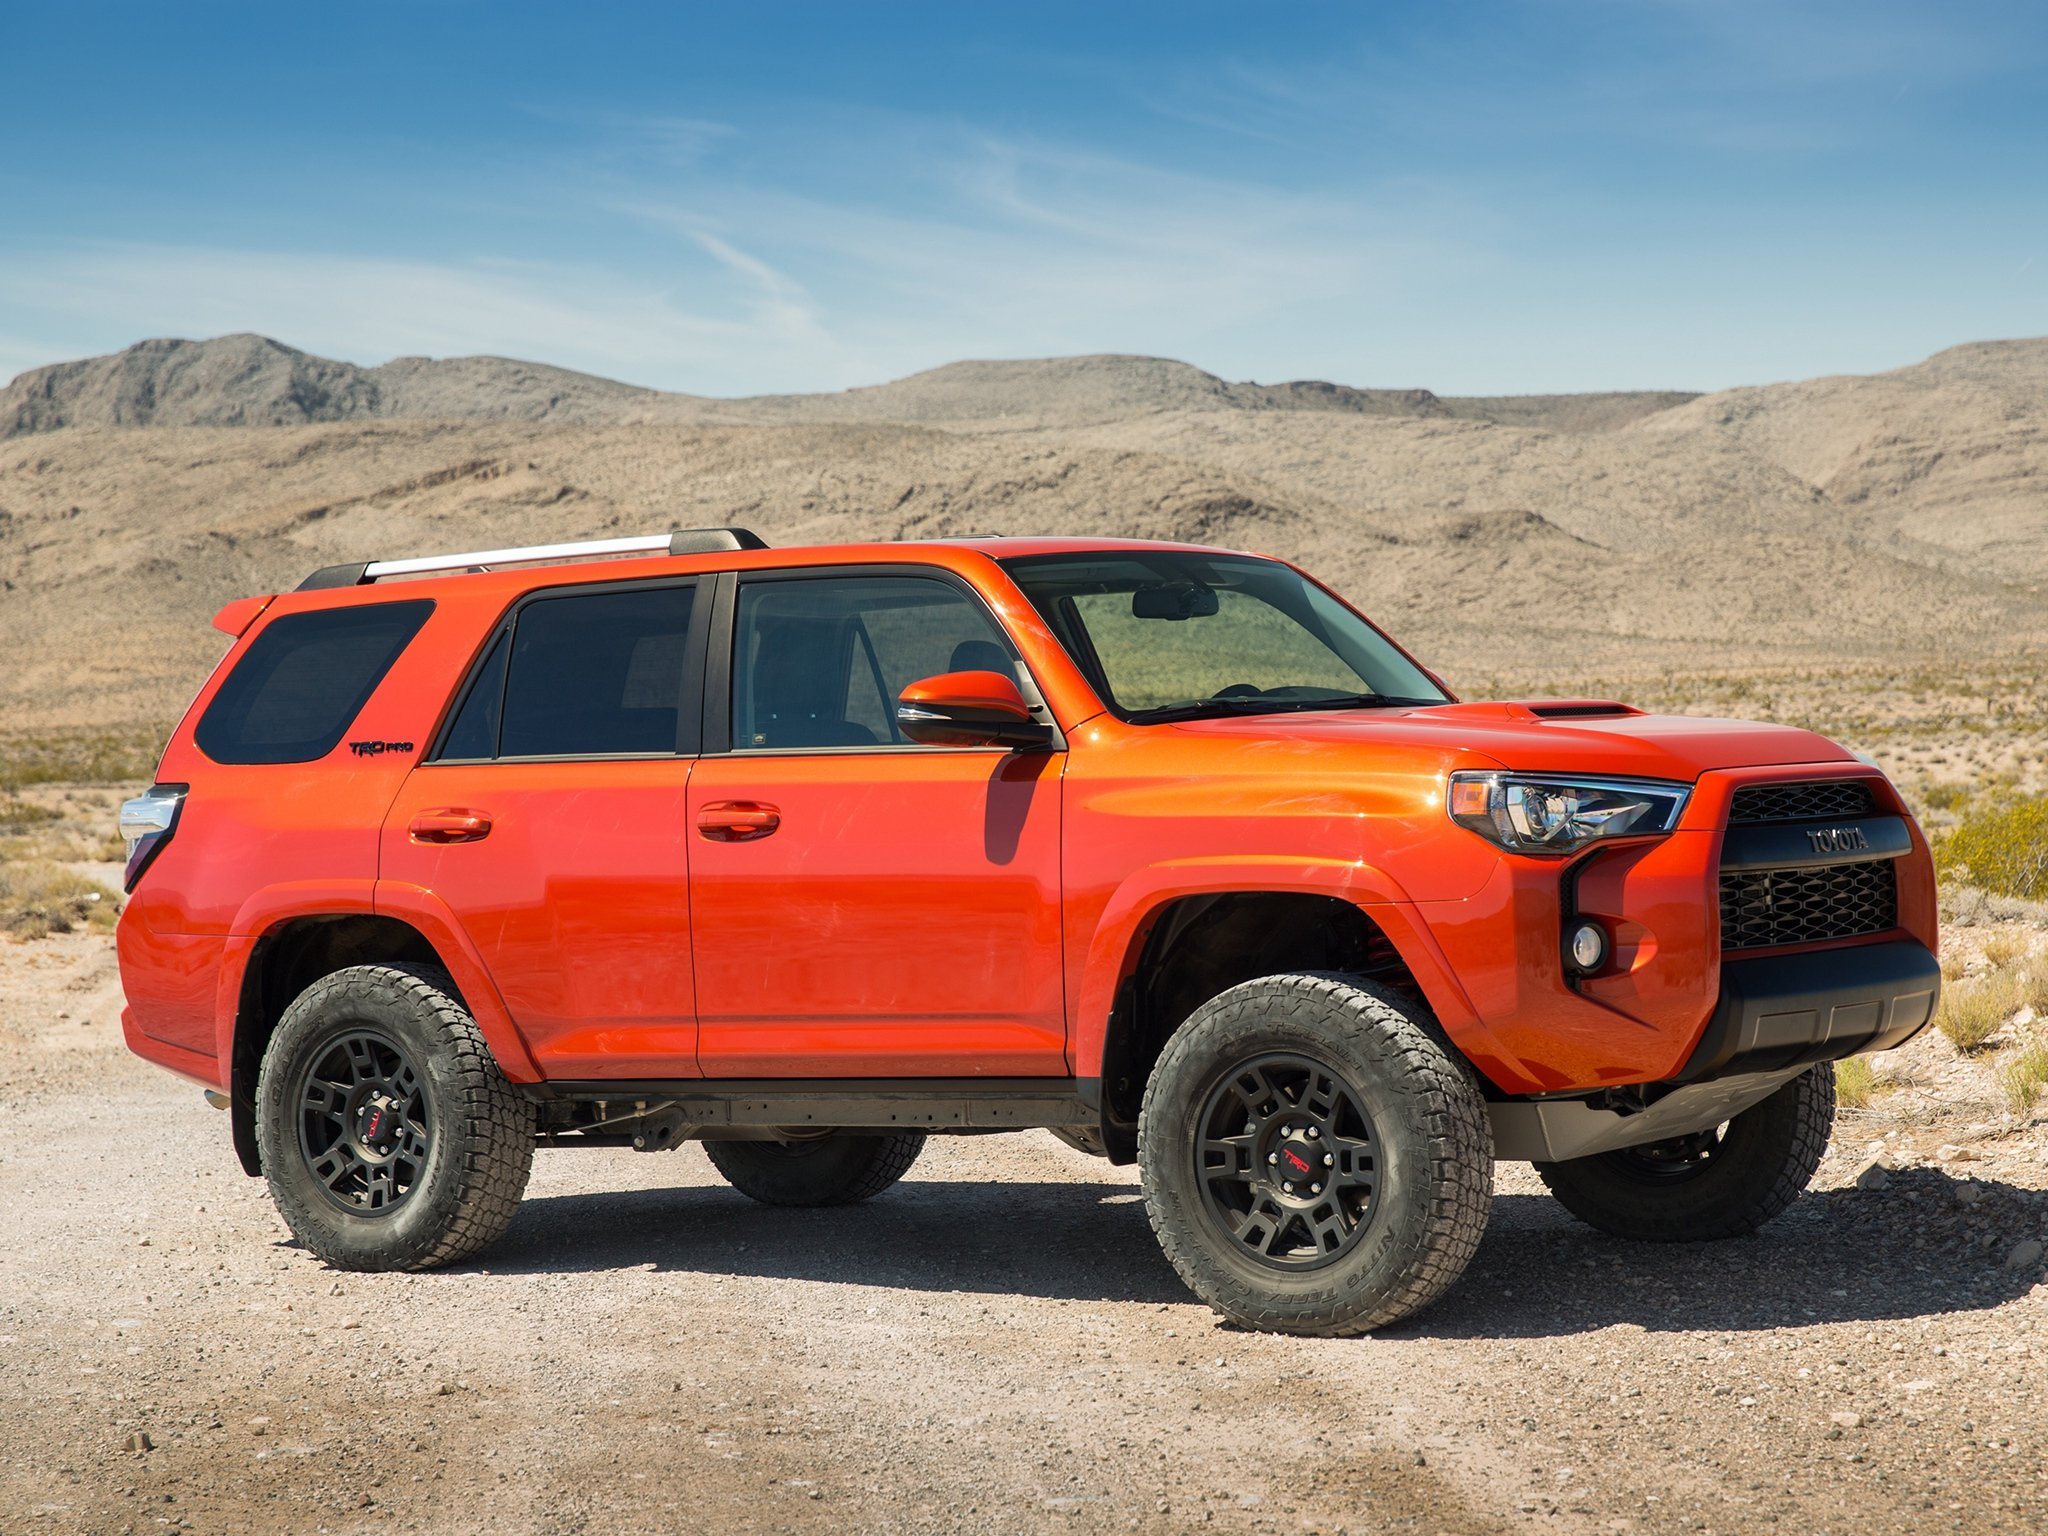 2015 trd toyota 4runner pro 4x4 suv d wallpaper 2048x1536 351044 wallpaperup. Black Bedroom Furniture Sets. Home Design Ideas